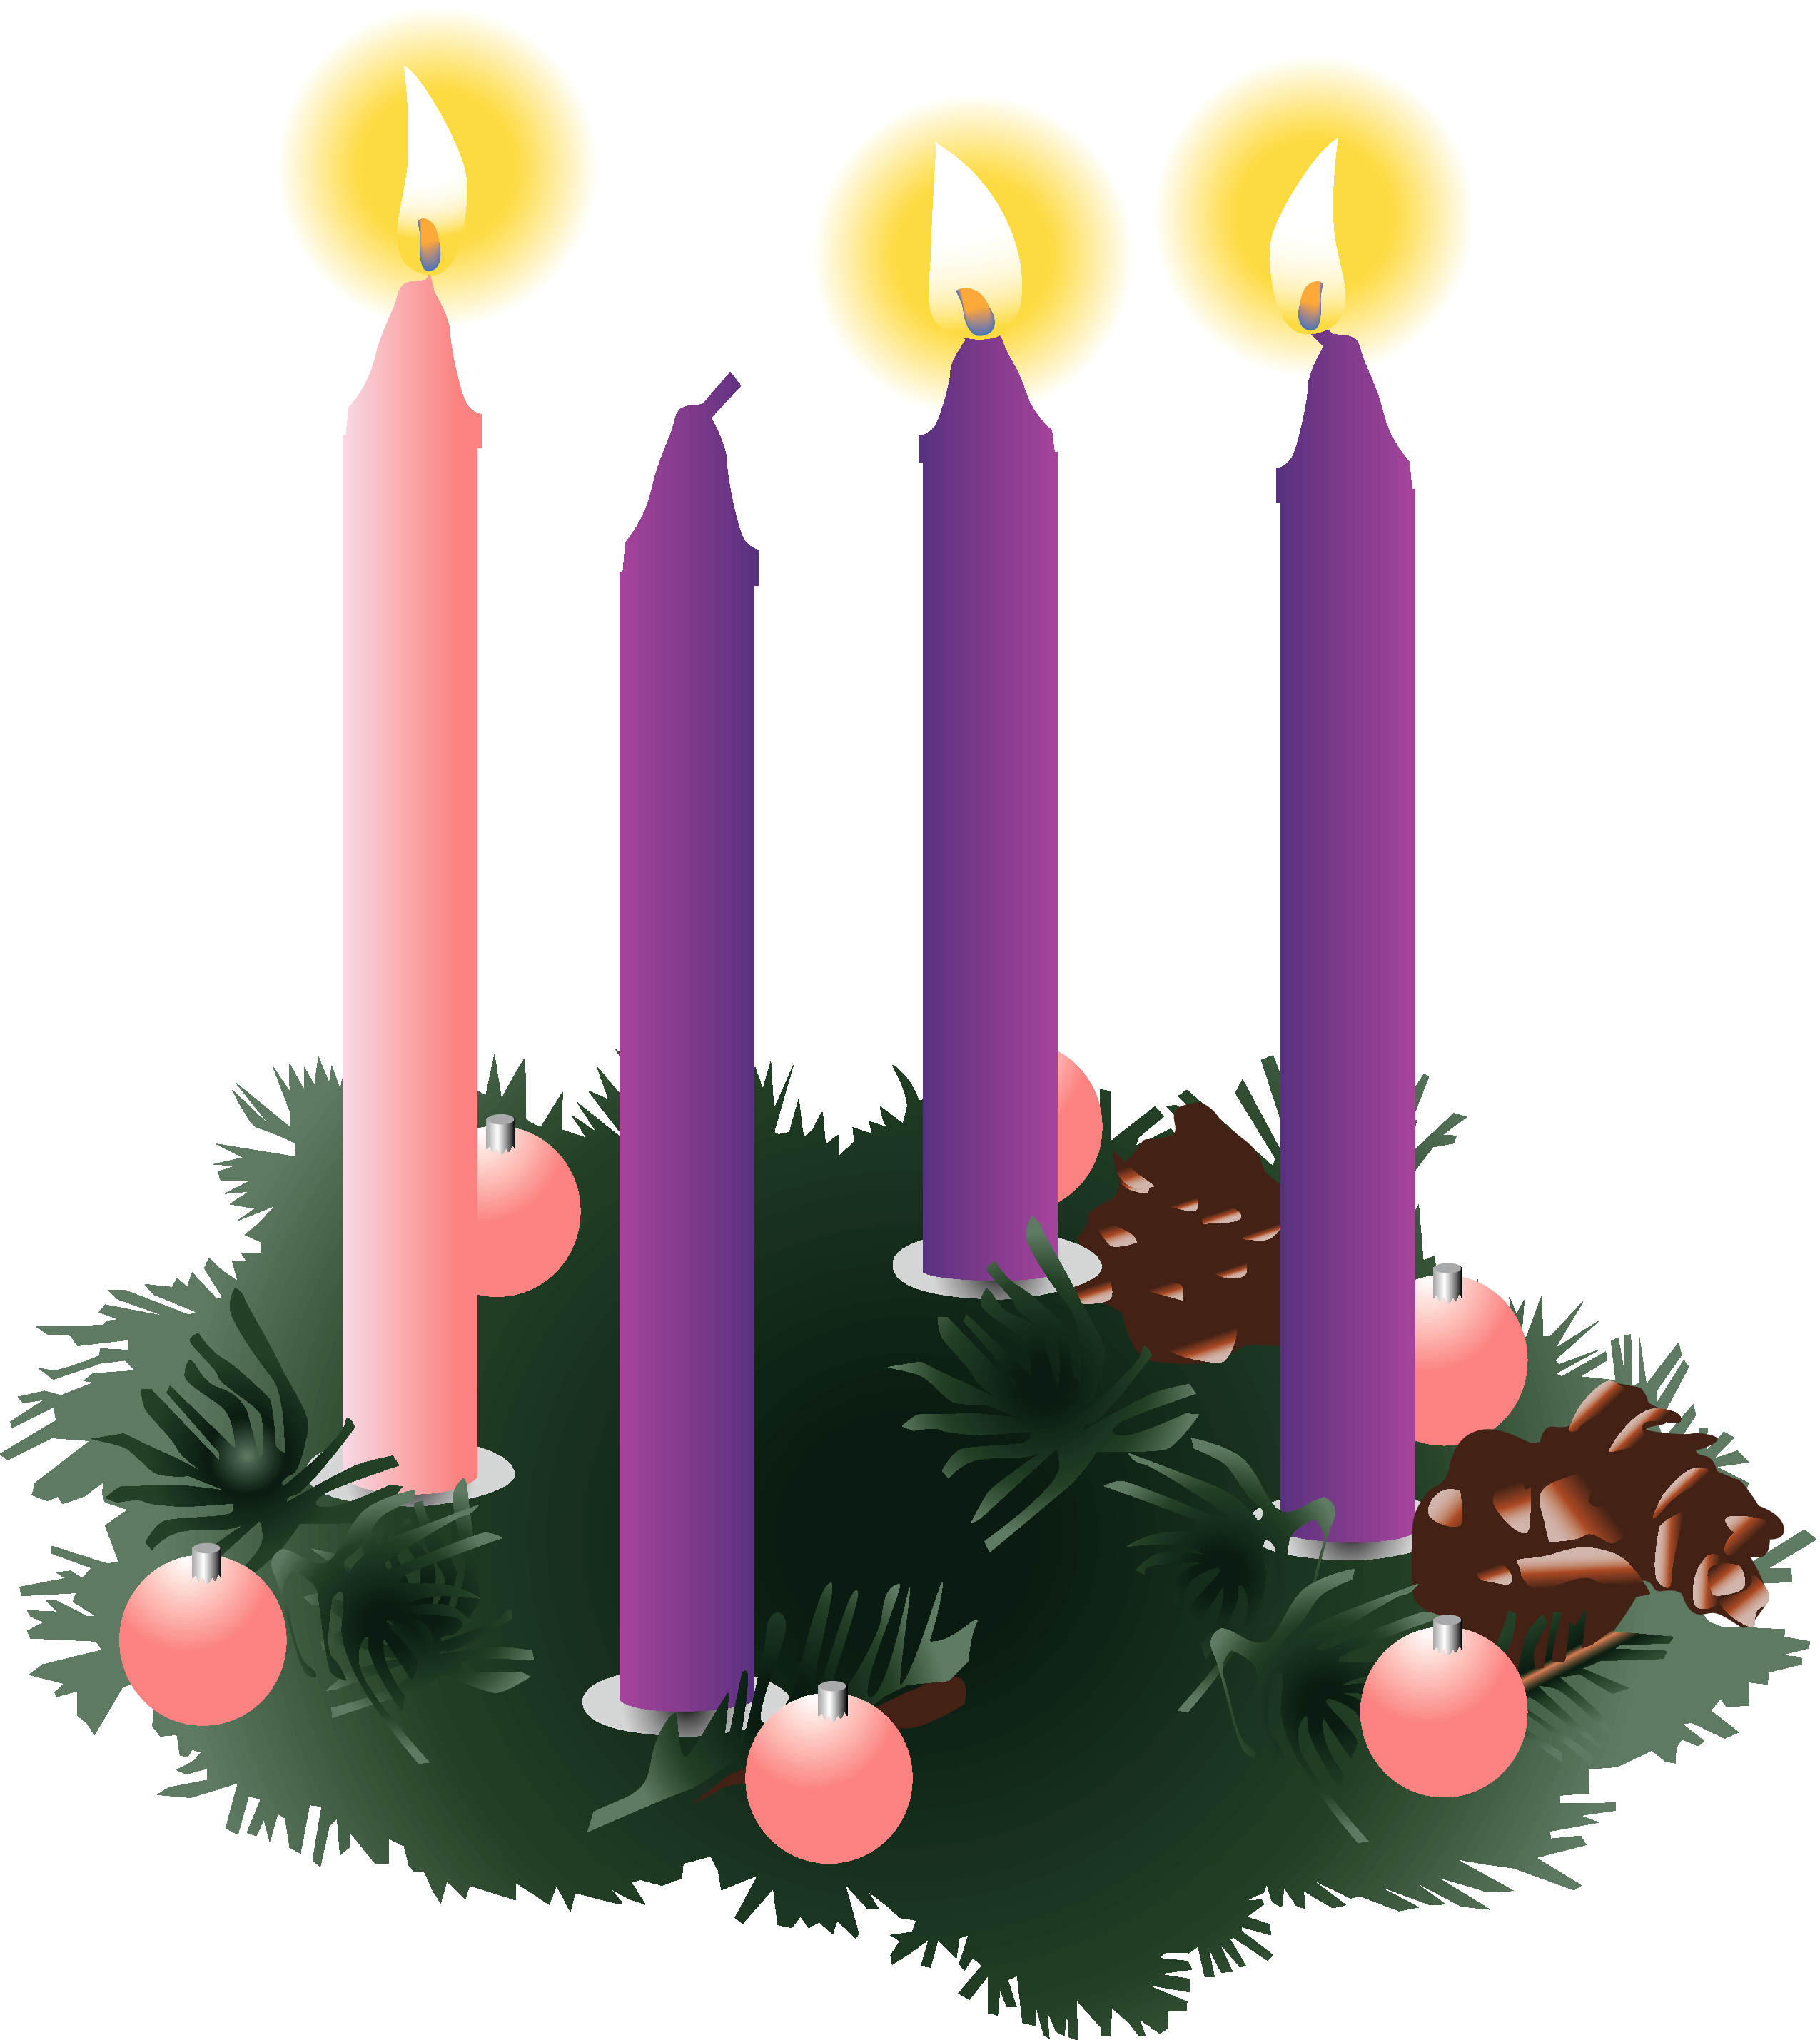 Four Purple Advent Candles Three Lit Png 2550 2858 Advent Candles Advent Wreath Candles Advent Candles Meaning